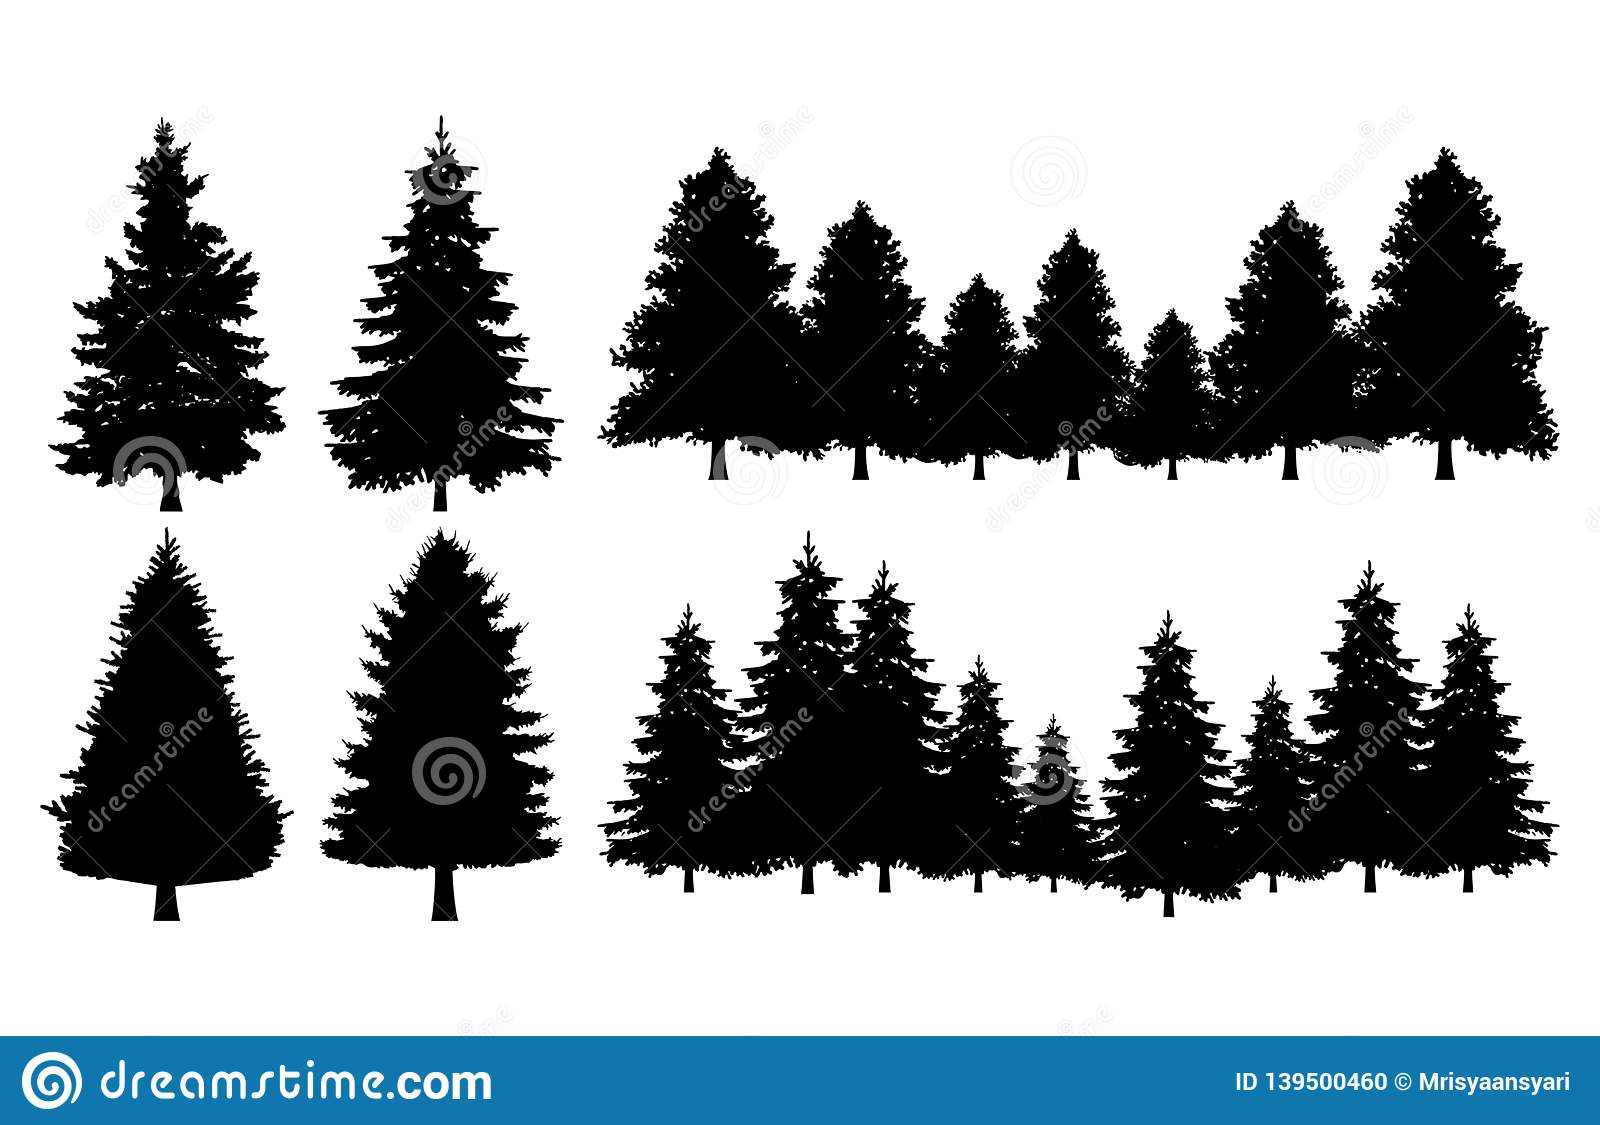 Pine Tree Stock Illustrations 165 624 Pine Tree Stock Illustrations Vectors Clipart Dreamstime Any questions, please leave a comment. https www dreamstime com concept design illustration vector pine tree vector clipart set isolated white background pine tree silhouette collections image139500460